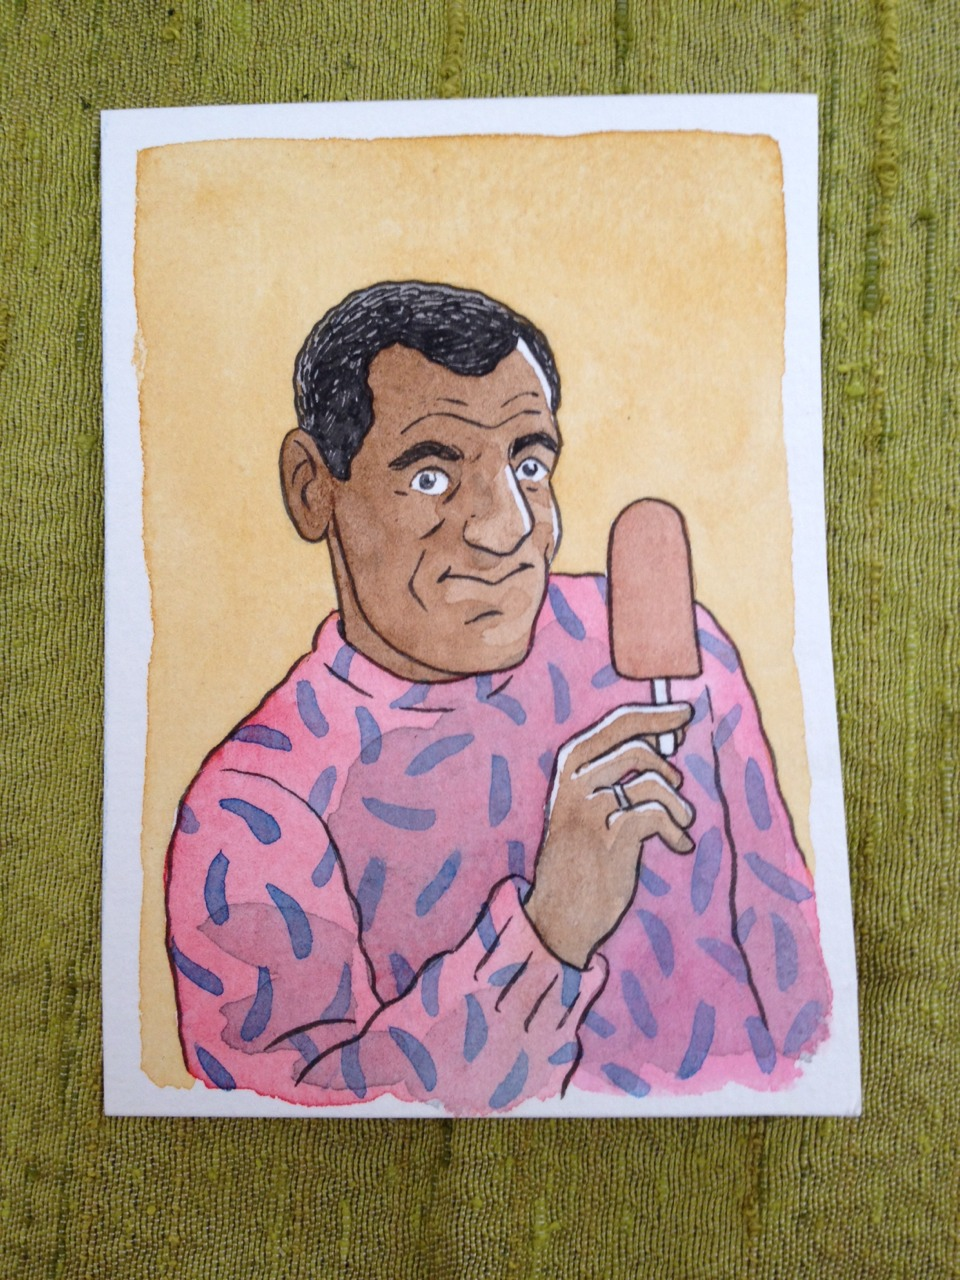 Come see me at CAKE fest today and get a $20 convention commission— how about a dad portrait for Father's Day? More delicious than a pudding pop.